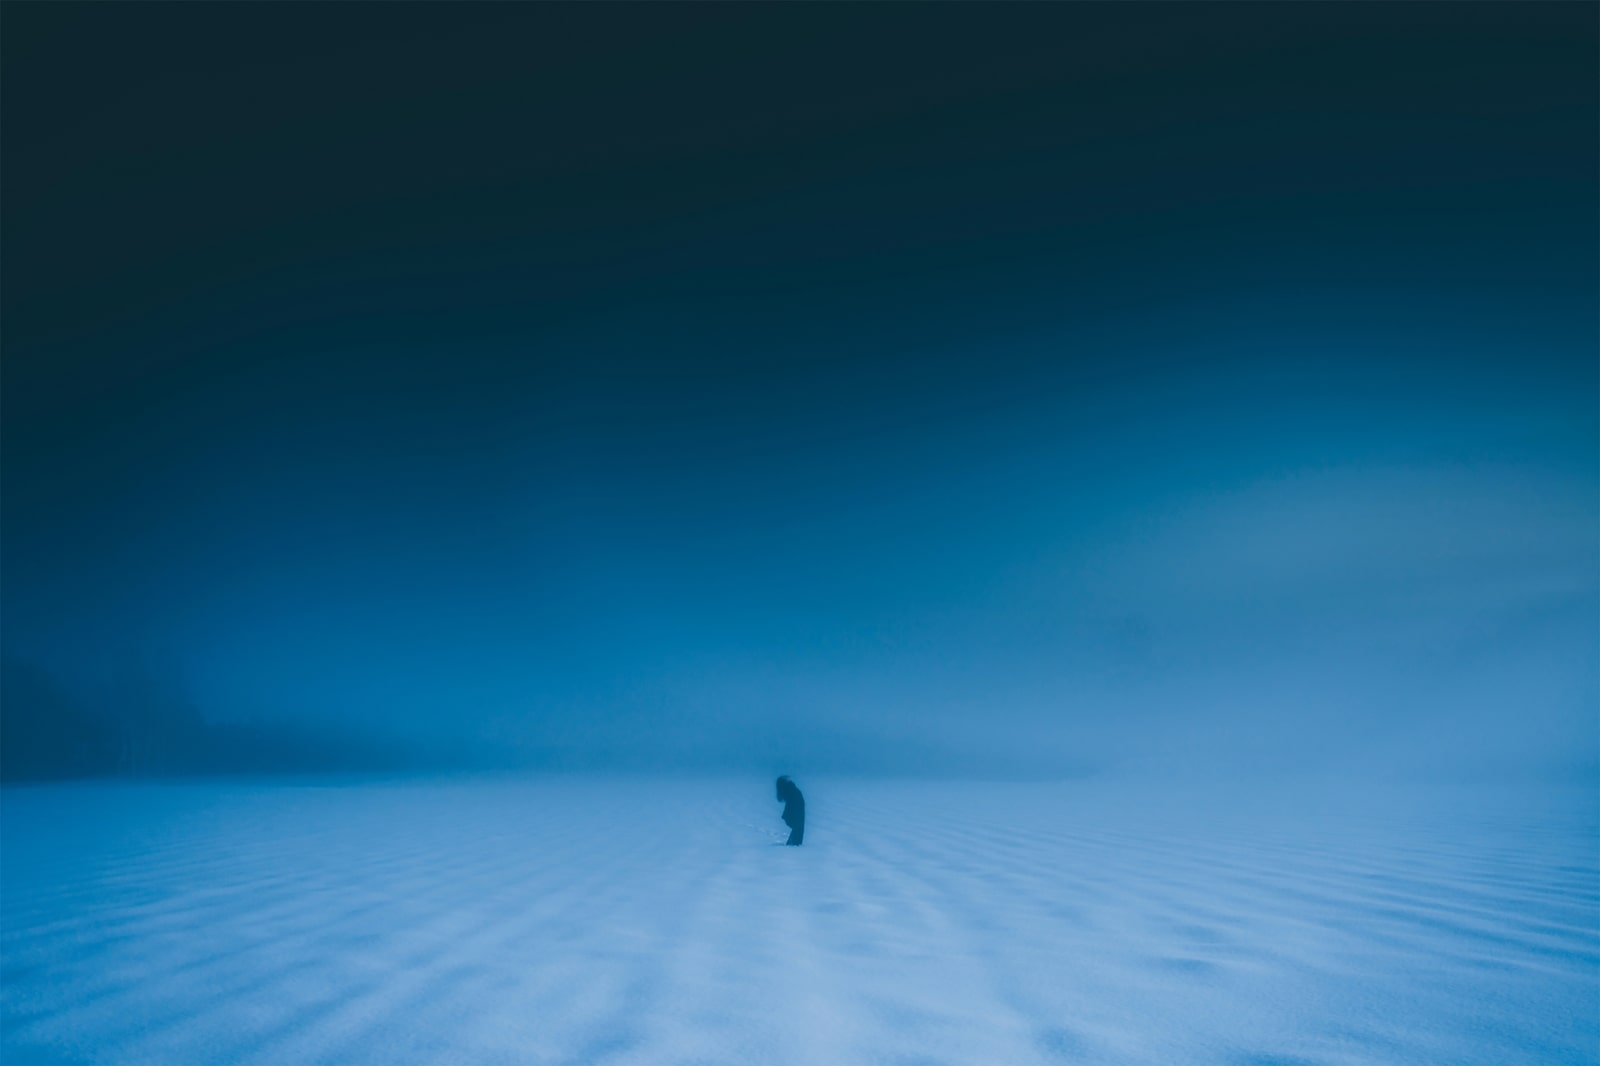 person in snowy field at night